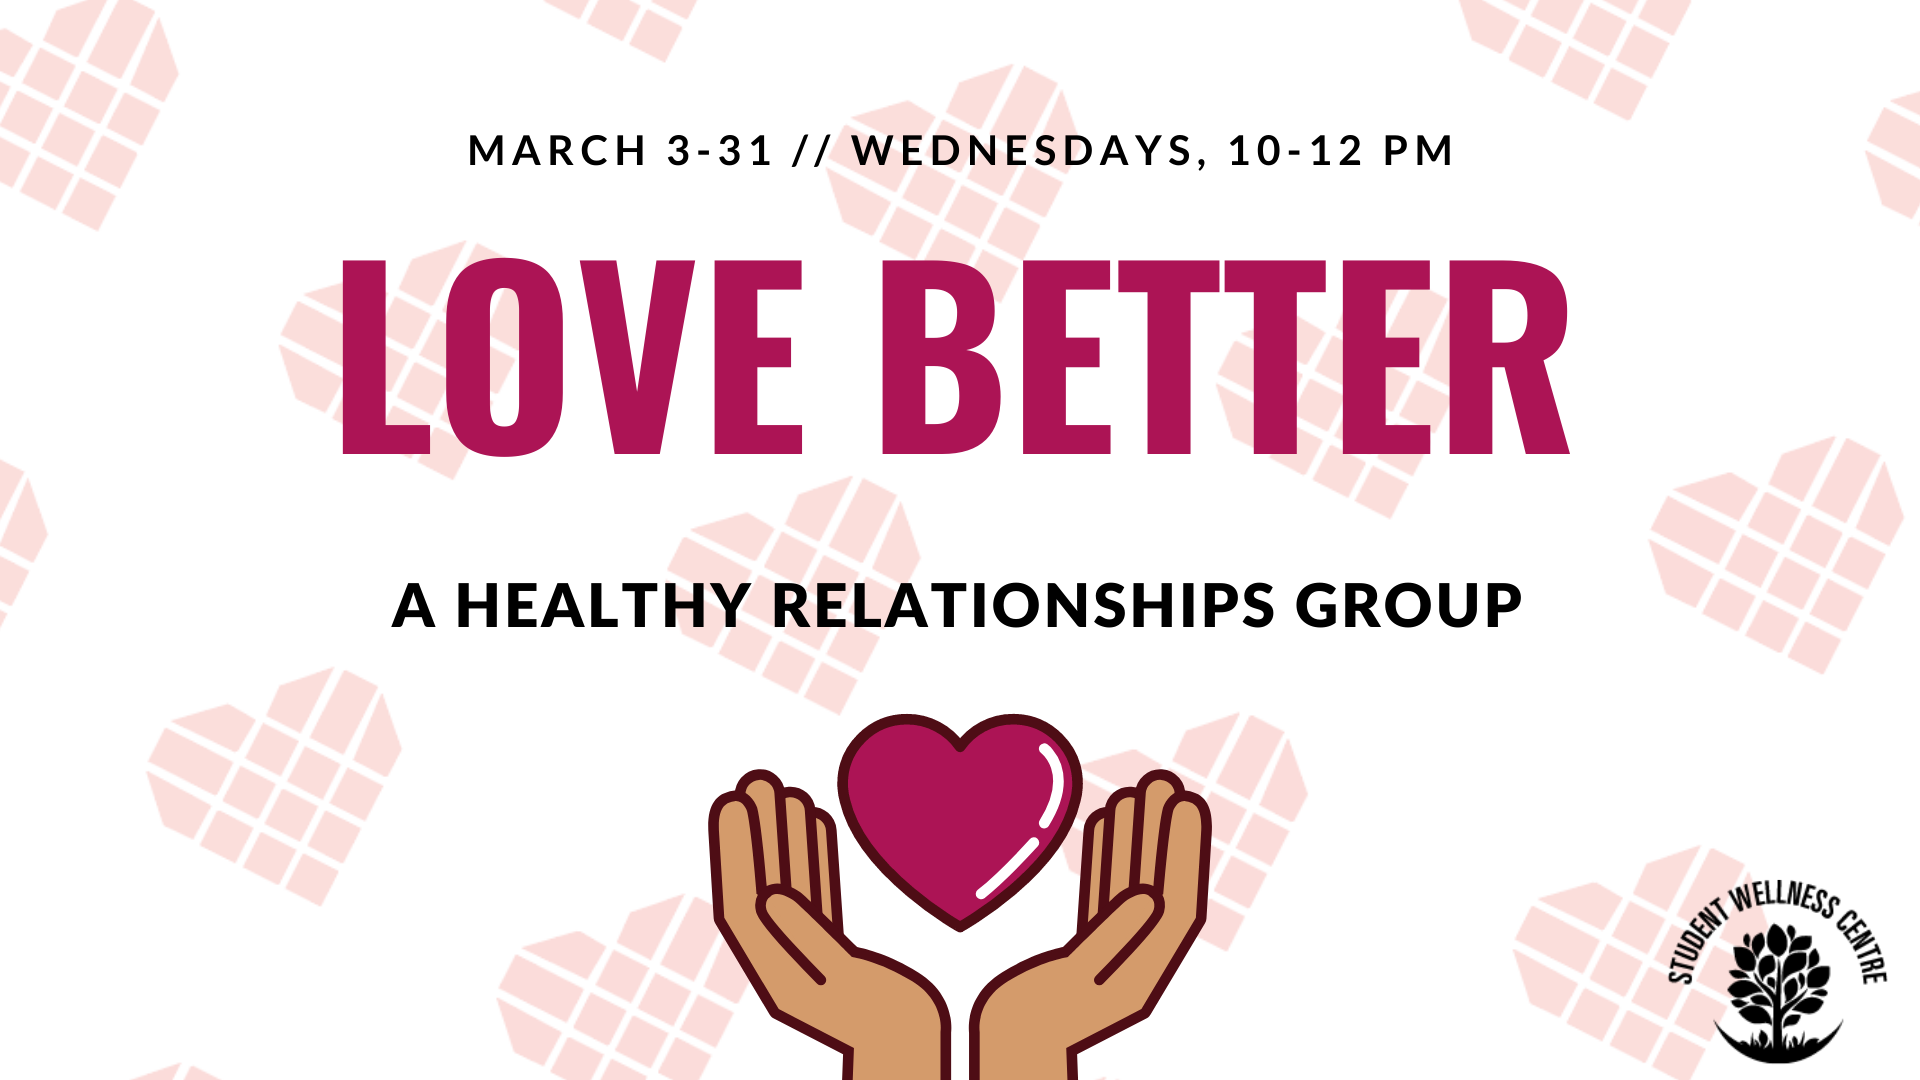 Love Better, a healthy relationships group.